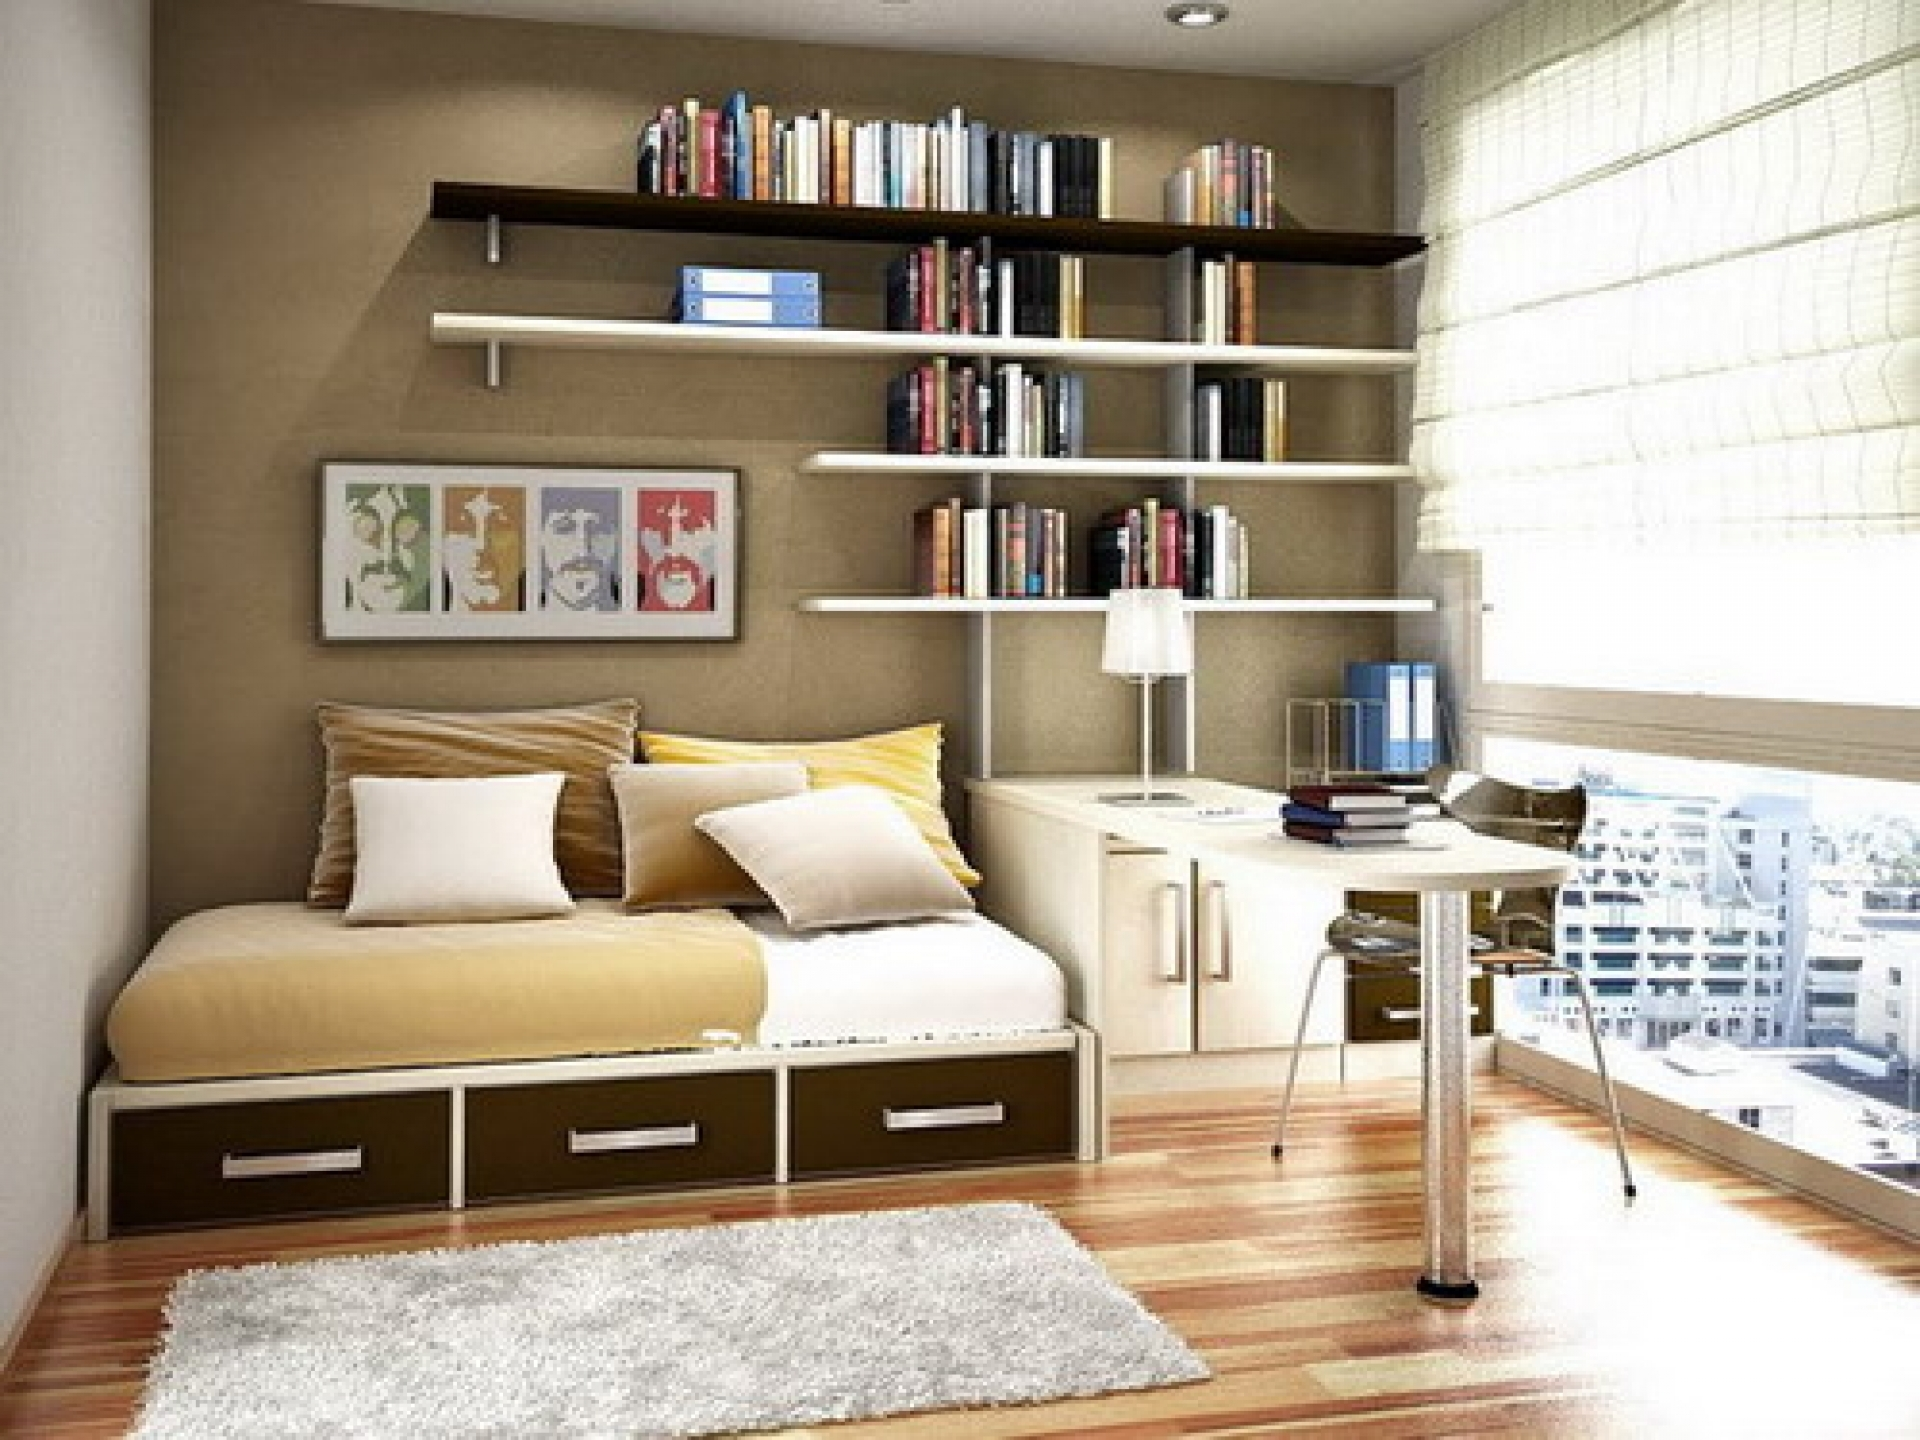 Modish Floating Bookshelves Over Sleeper Couch Storage And Throughout Study Bookshelves (View 10 of 15)